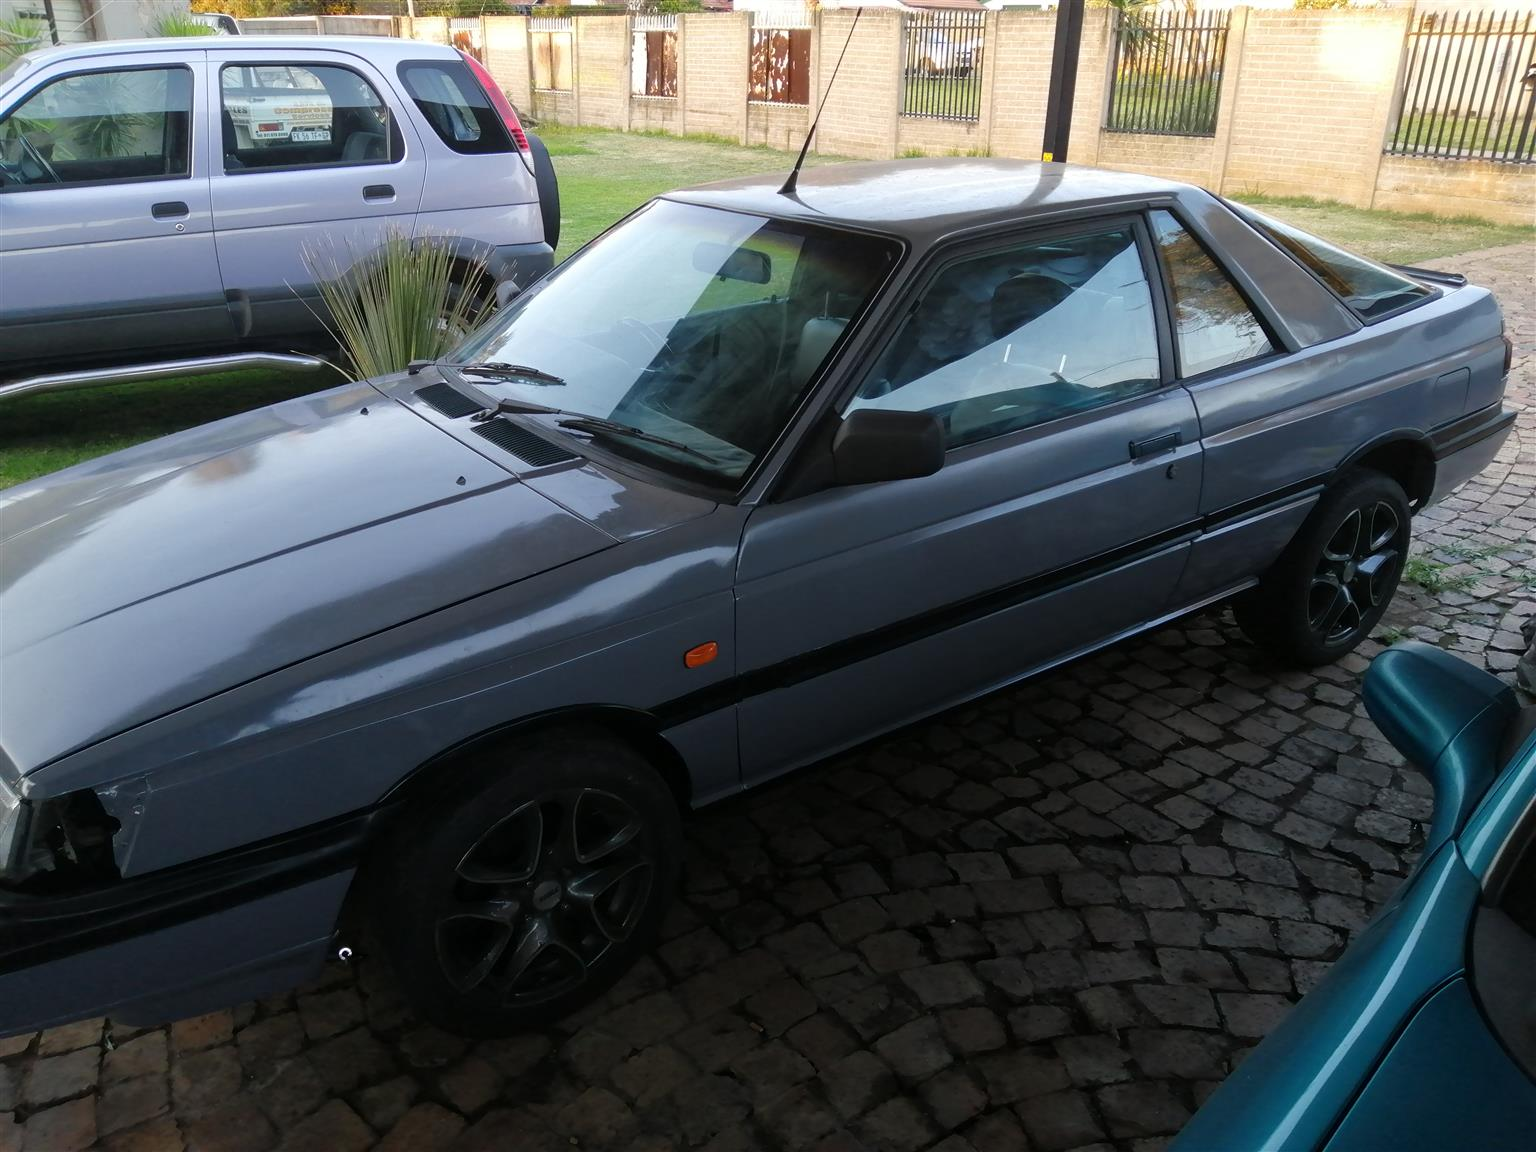 1987 Nissan Sentra 1 6 Acenta Junk Mail If you are searching nissan sentra in nigeria, look up for it on jiji. 1987 nissan sentra 1 6 acenta